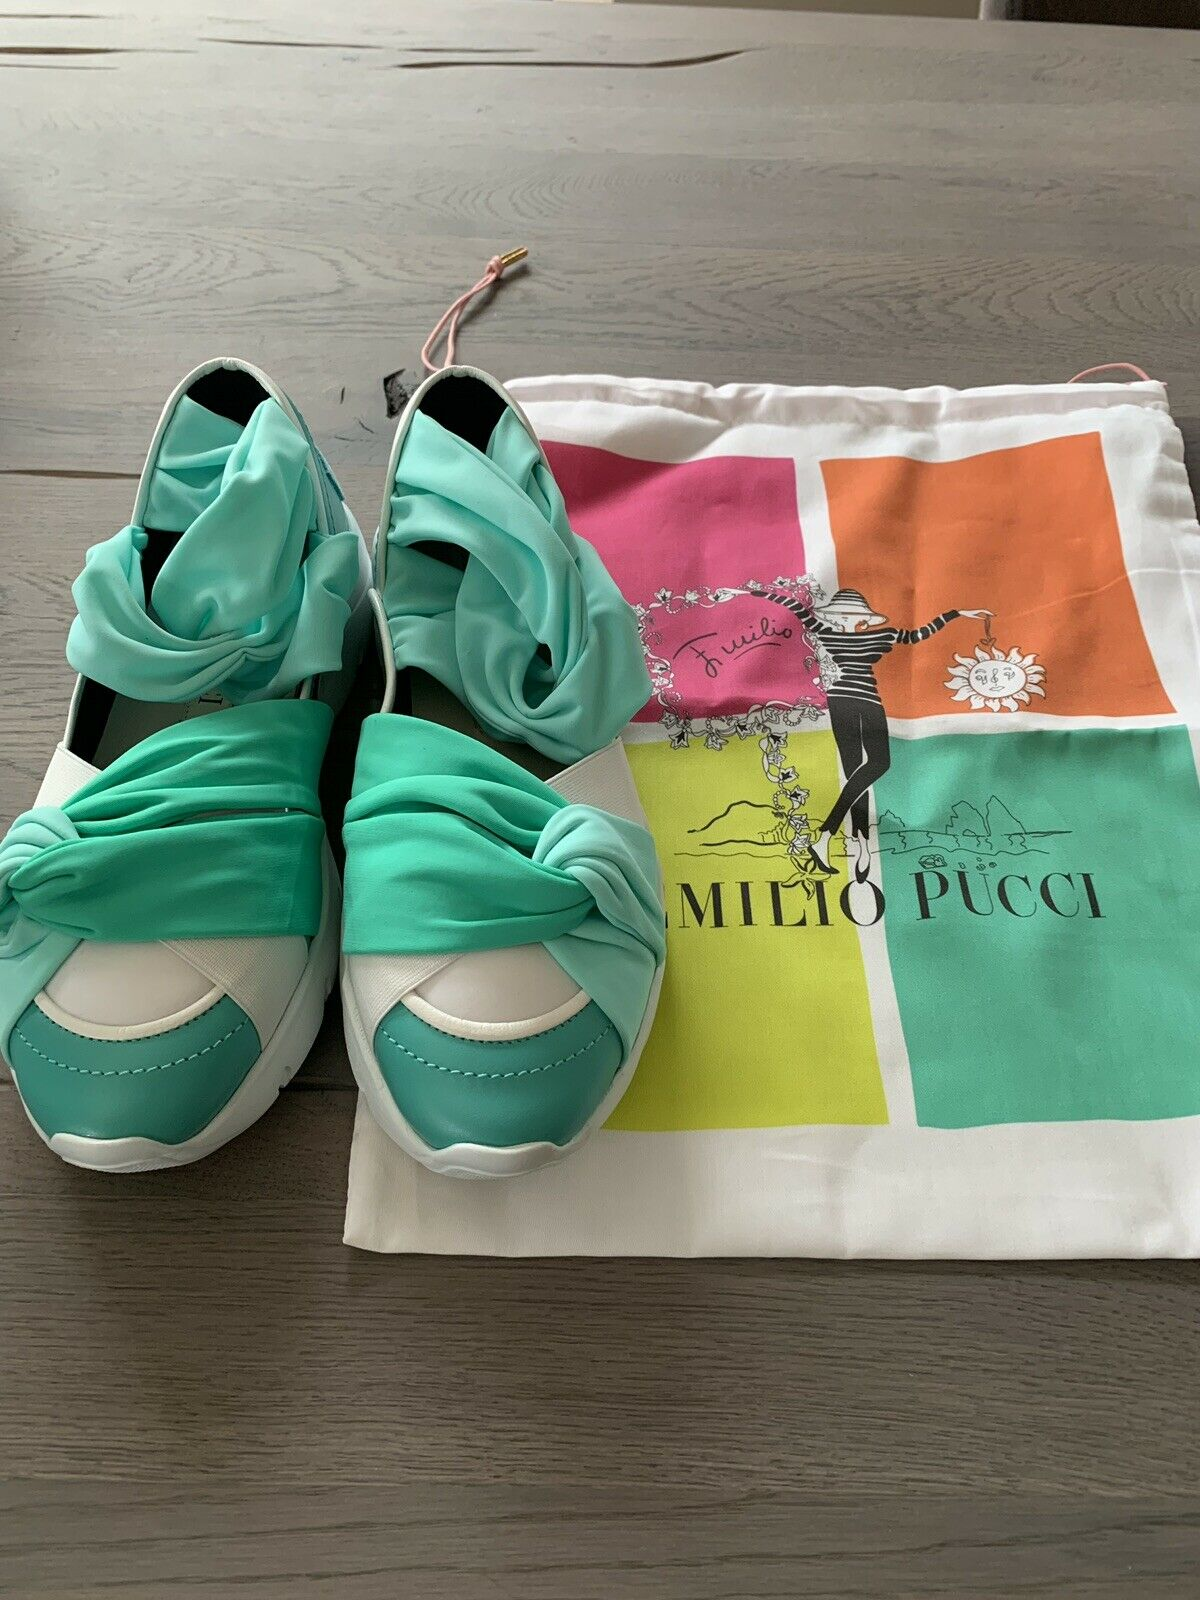 EMILIO PUCCI CITY UP RUFFLE TRAINERS SLIP-ON Turnschuhe schuhe TURNSCHUHE SCHUHE 40